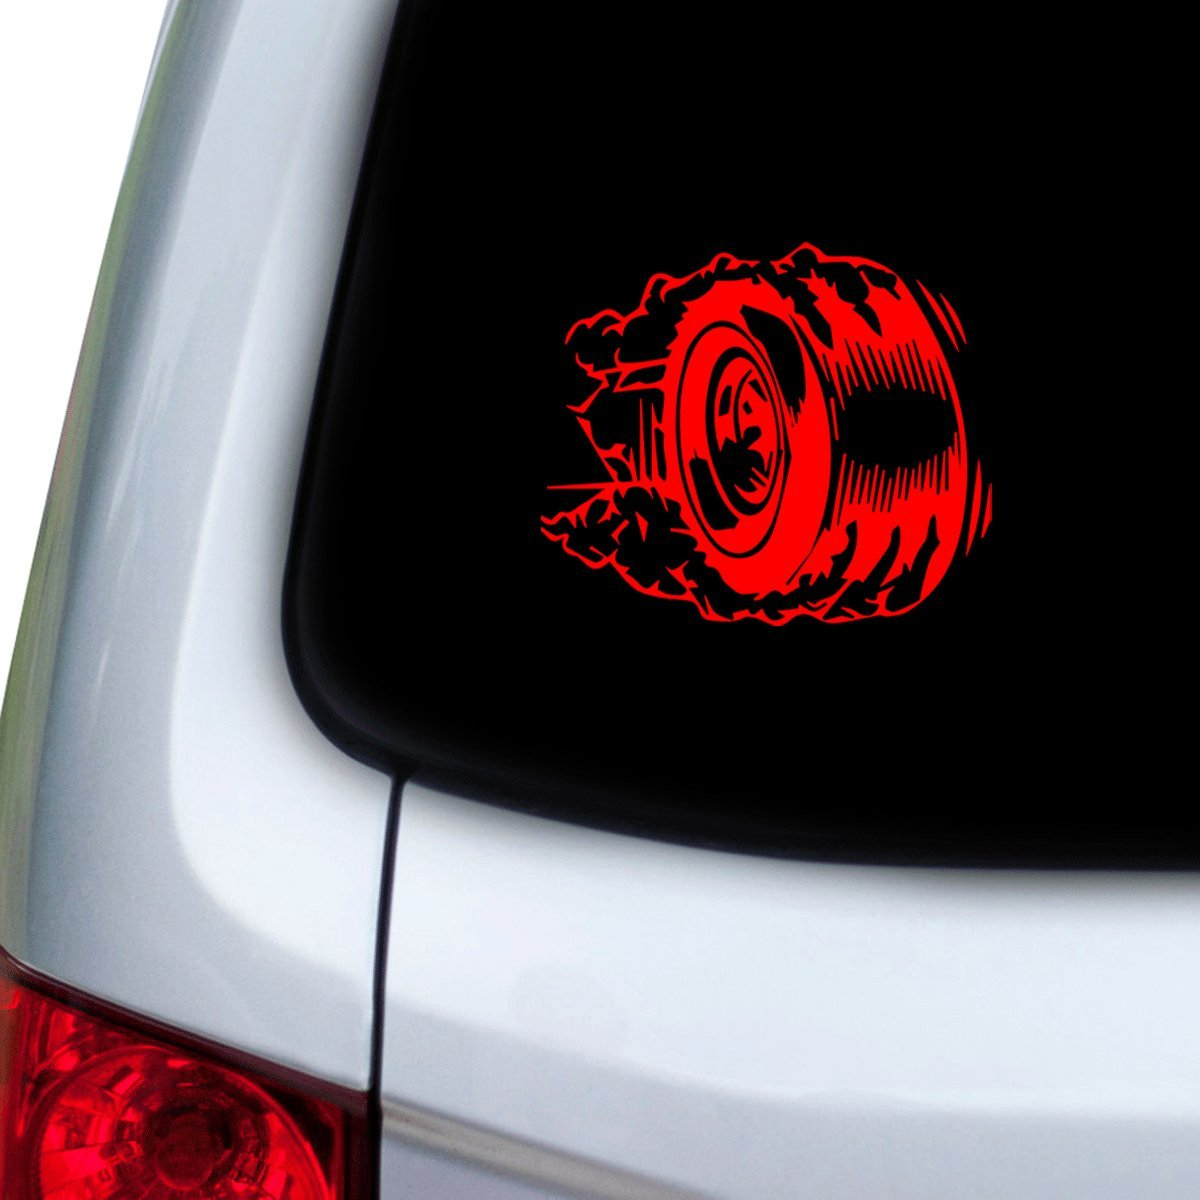 Red Hoods StickAny Car and Auto Decal Series Tire Burnout Sticker for Windows Doors